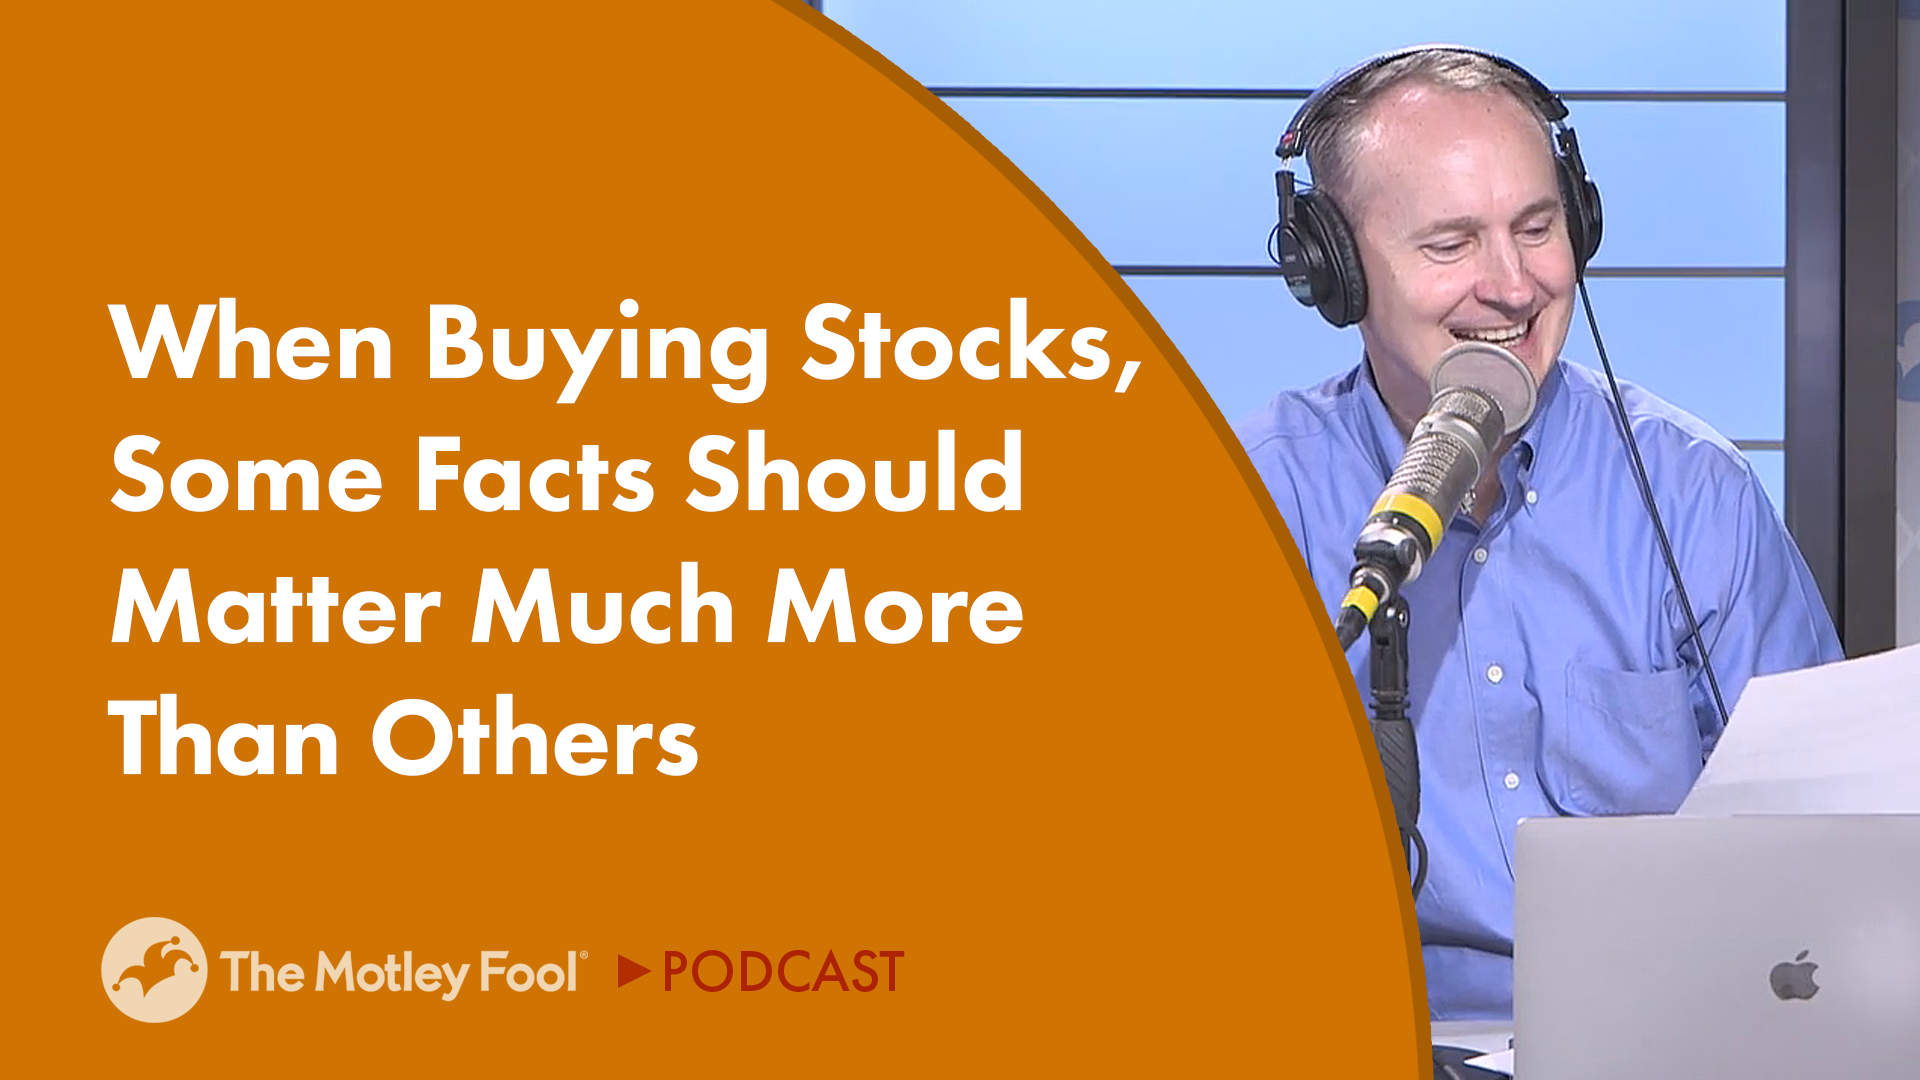 When Buying Stocks, Some Facts Should Matter Much More Than Others